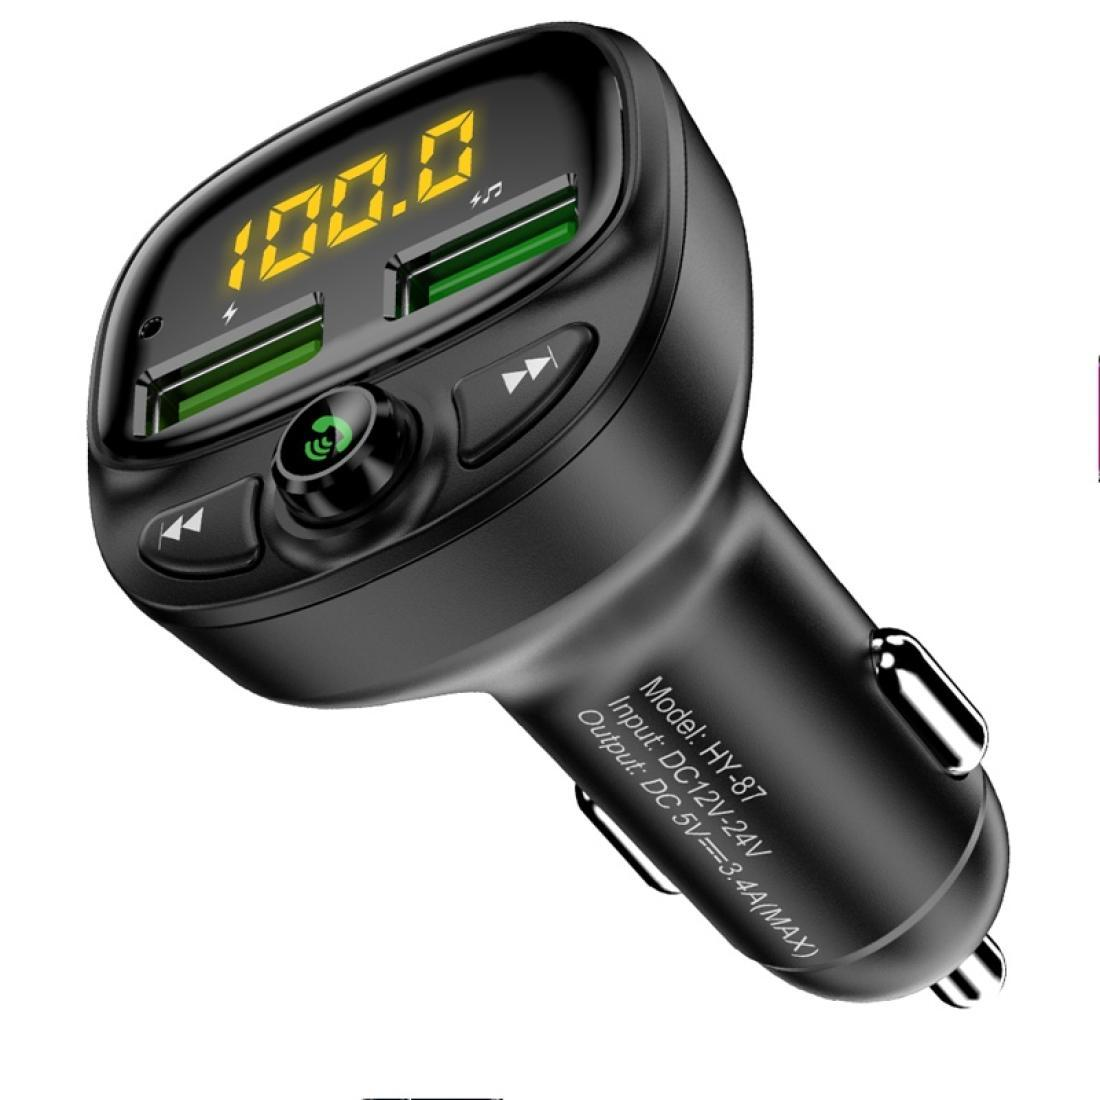 FLOVEME VALE BLUETOOTH Lecteur MP3 Kit de voiture Prise en charge de la carte TF Carte U Disk Bluetooth Connection